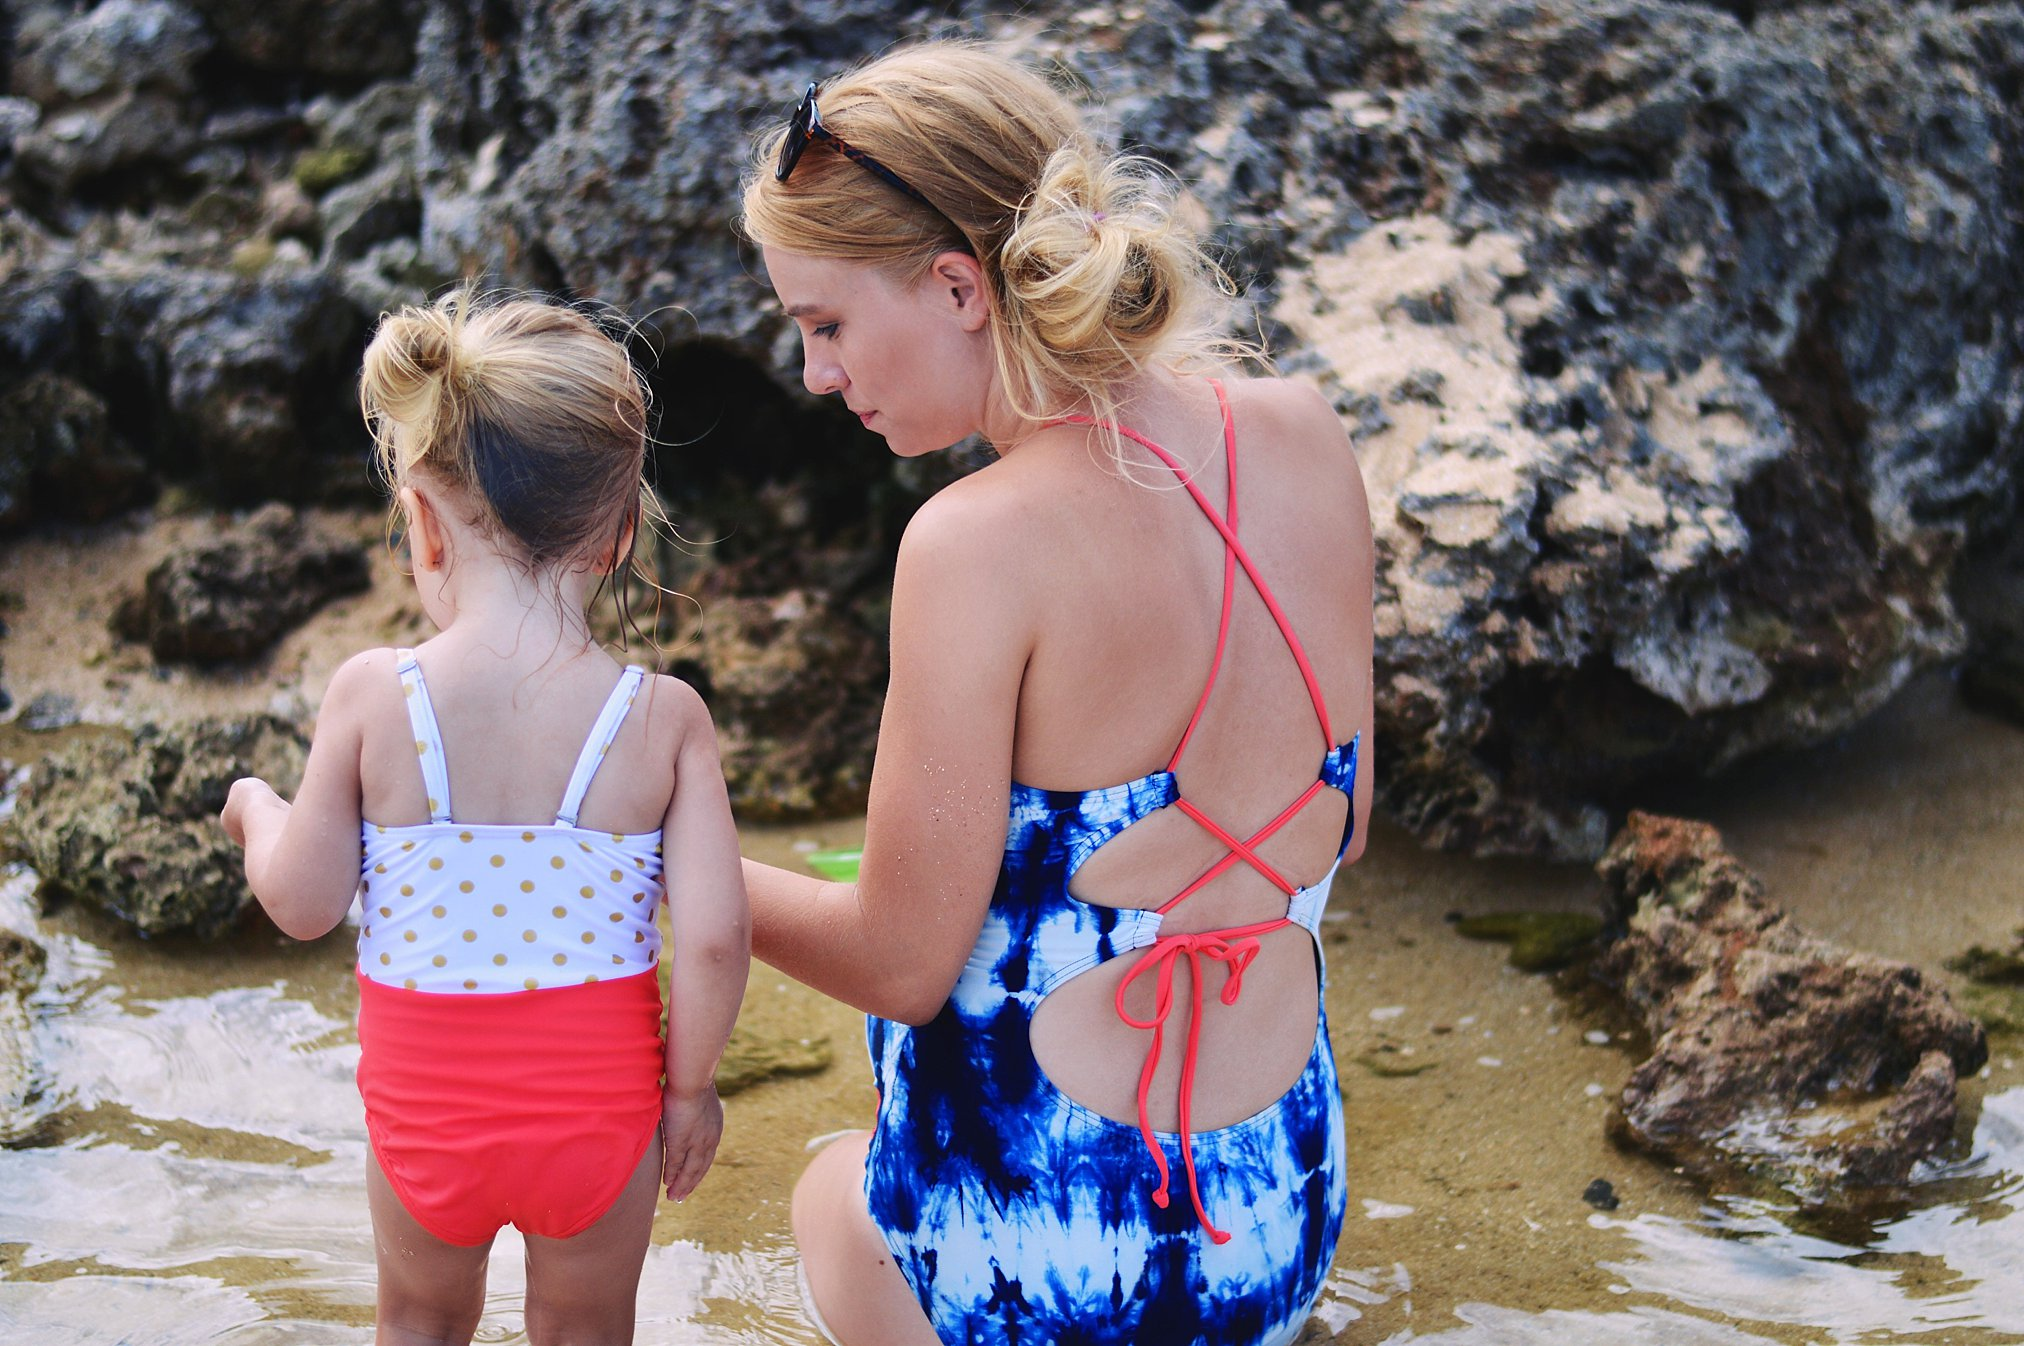 d9b8a7a34ed6f Three Awesome Maternity Swimsuit Styles That Are Not Maternity